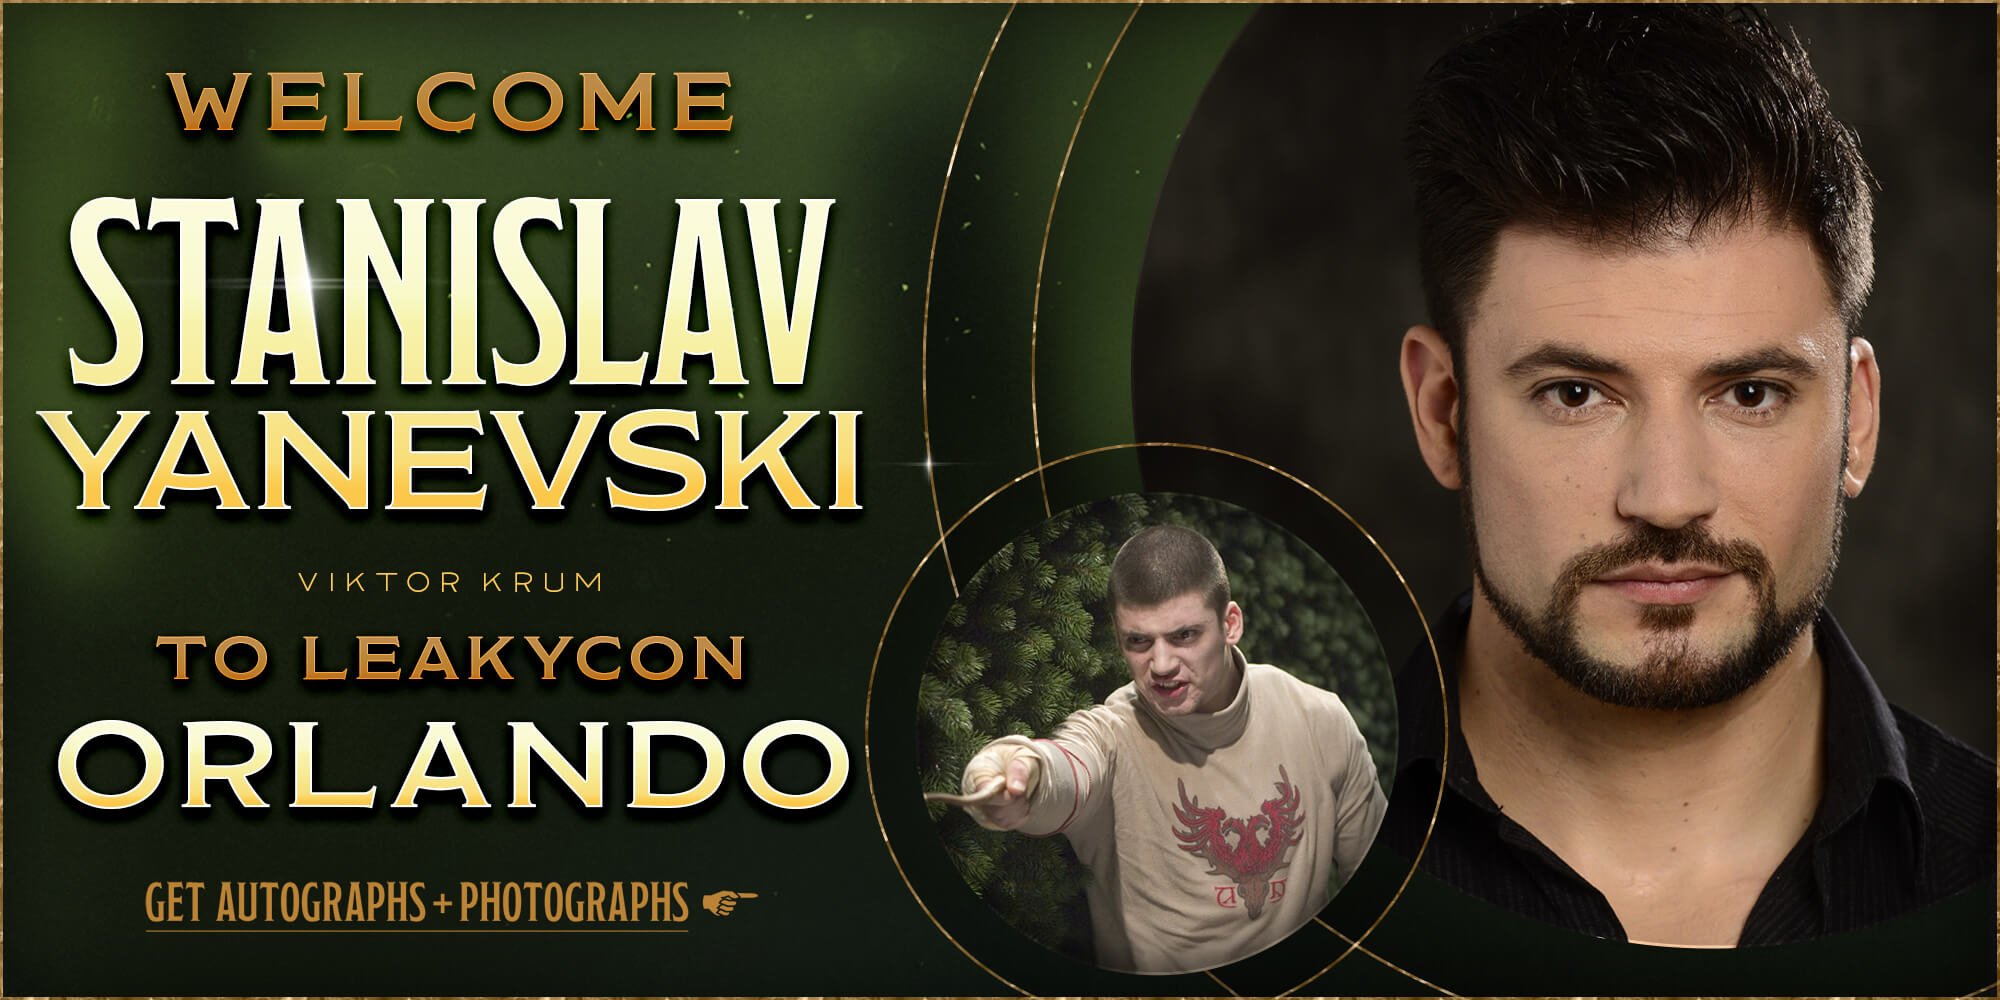 Welcome Stanislav Yanevski to LeakyCon Orlando!